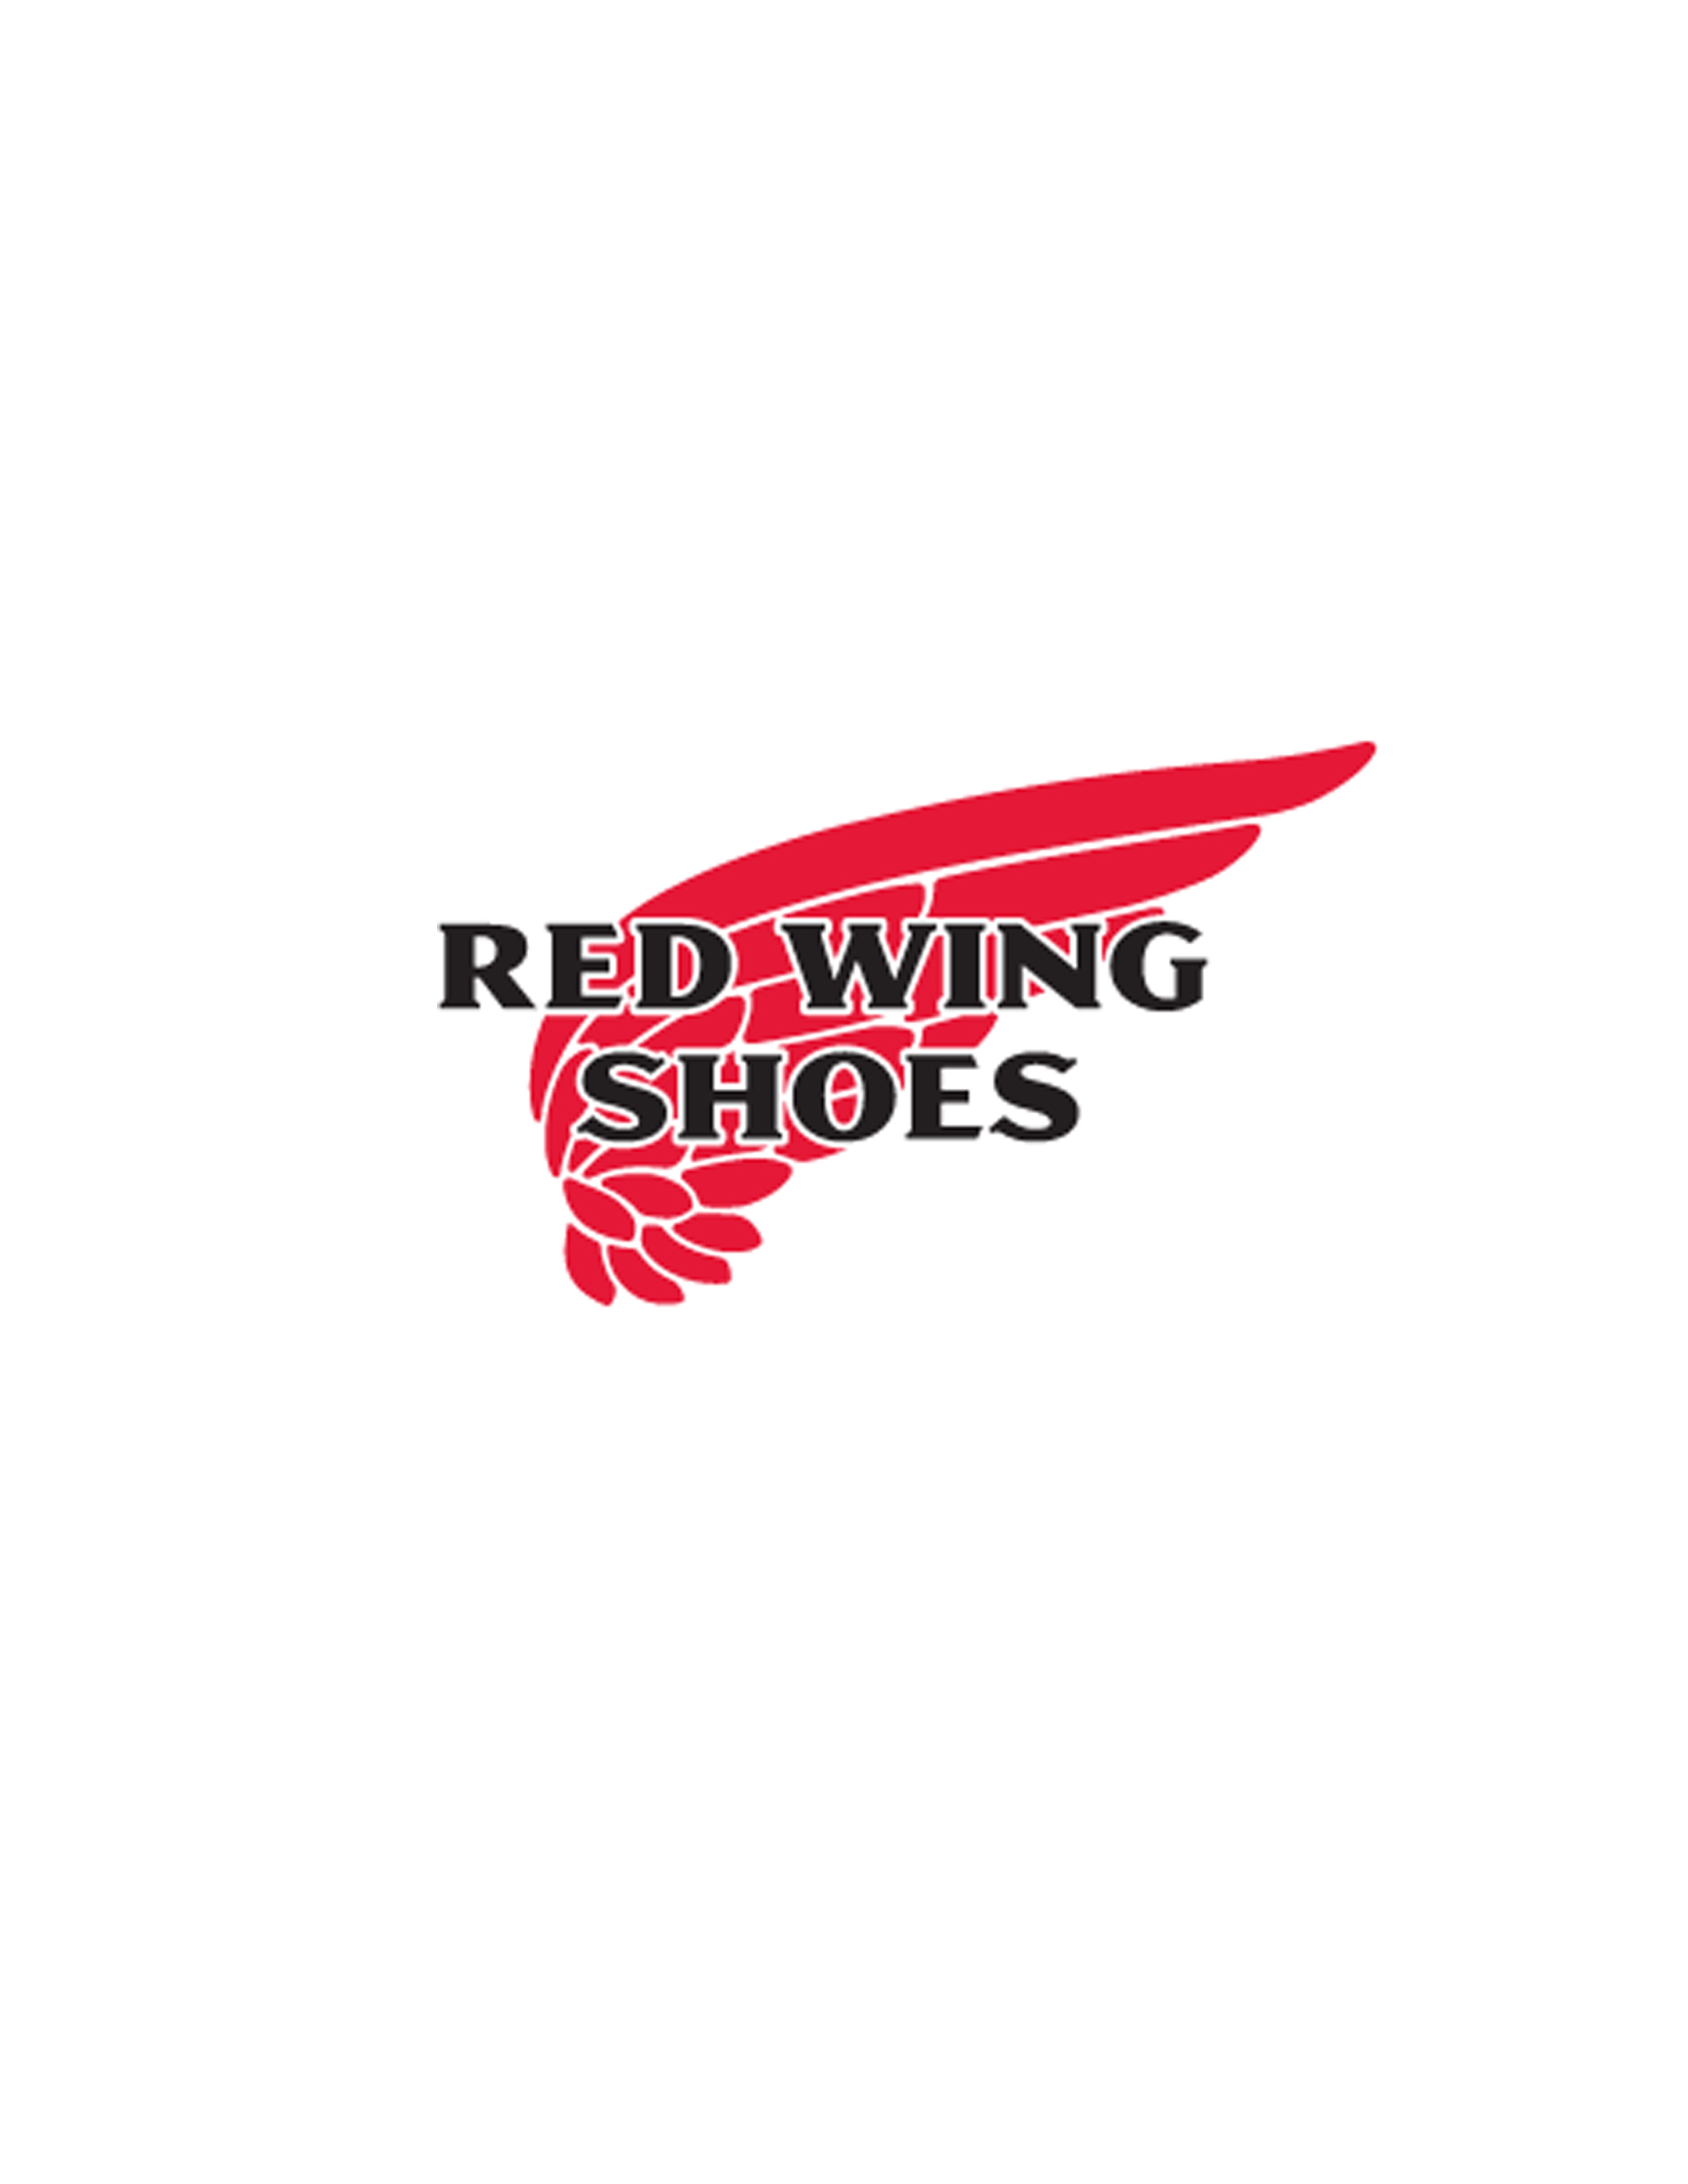 Red Wing Shoes Logos